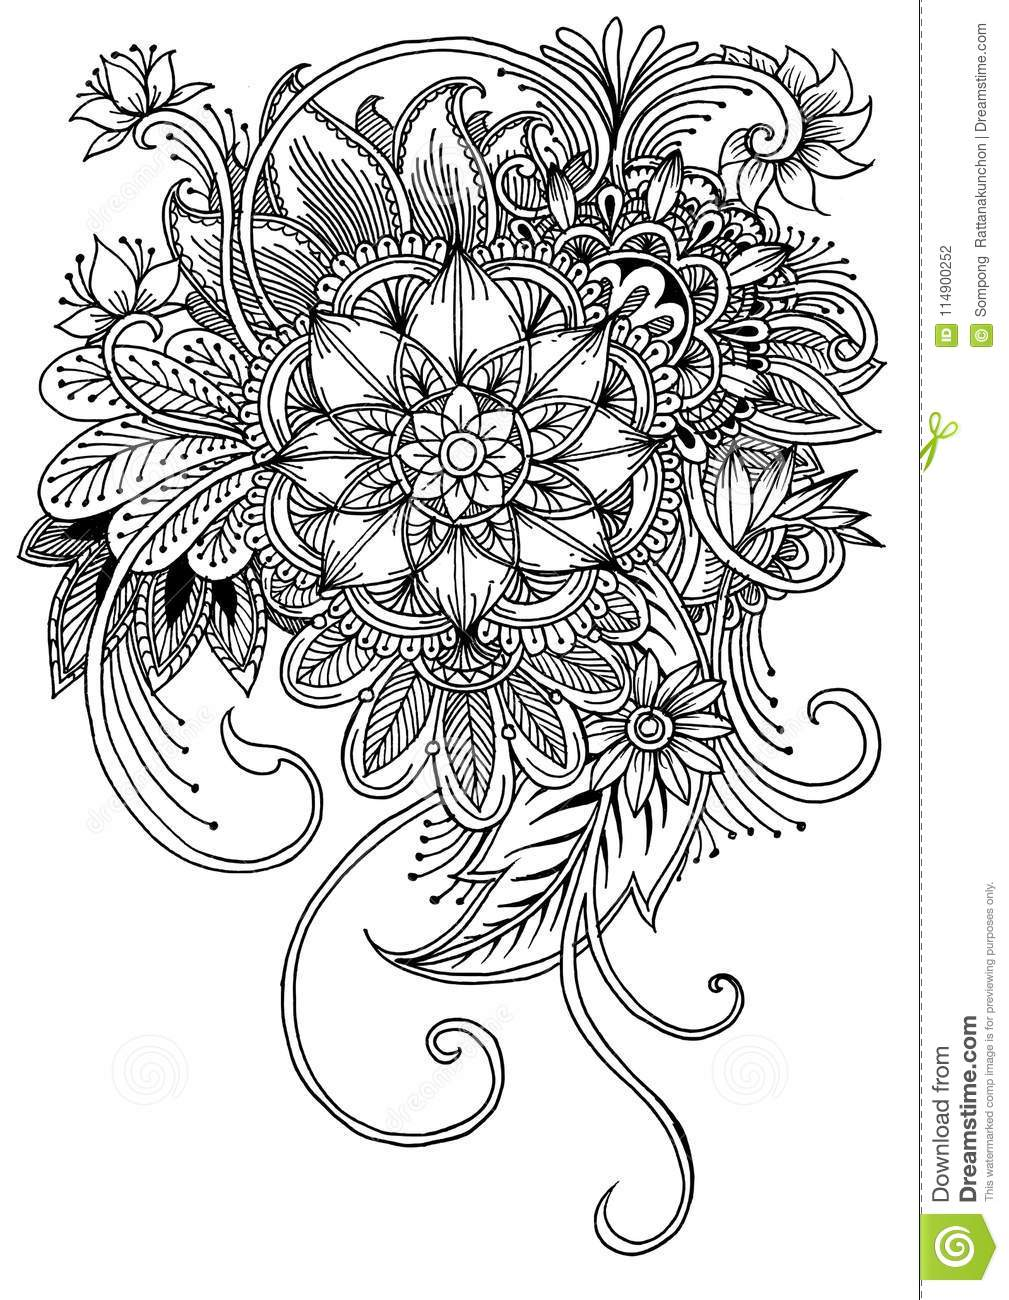 Coloring Page With Flowers And Leaves Stock Vector Illustration